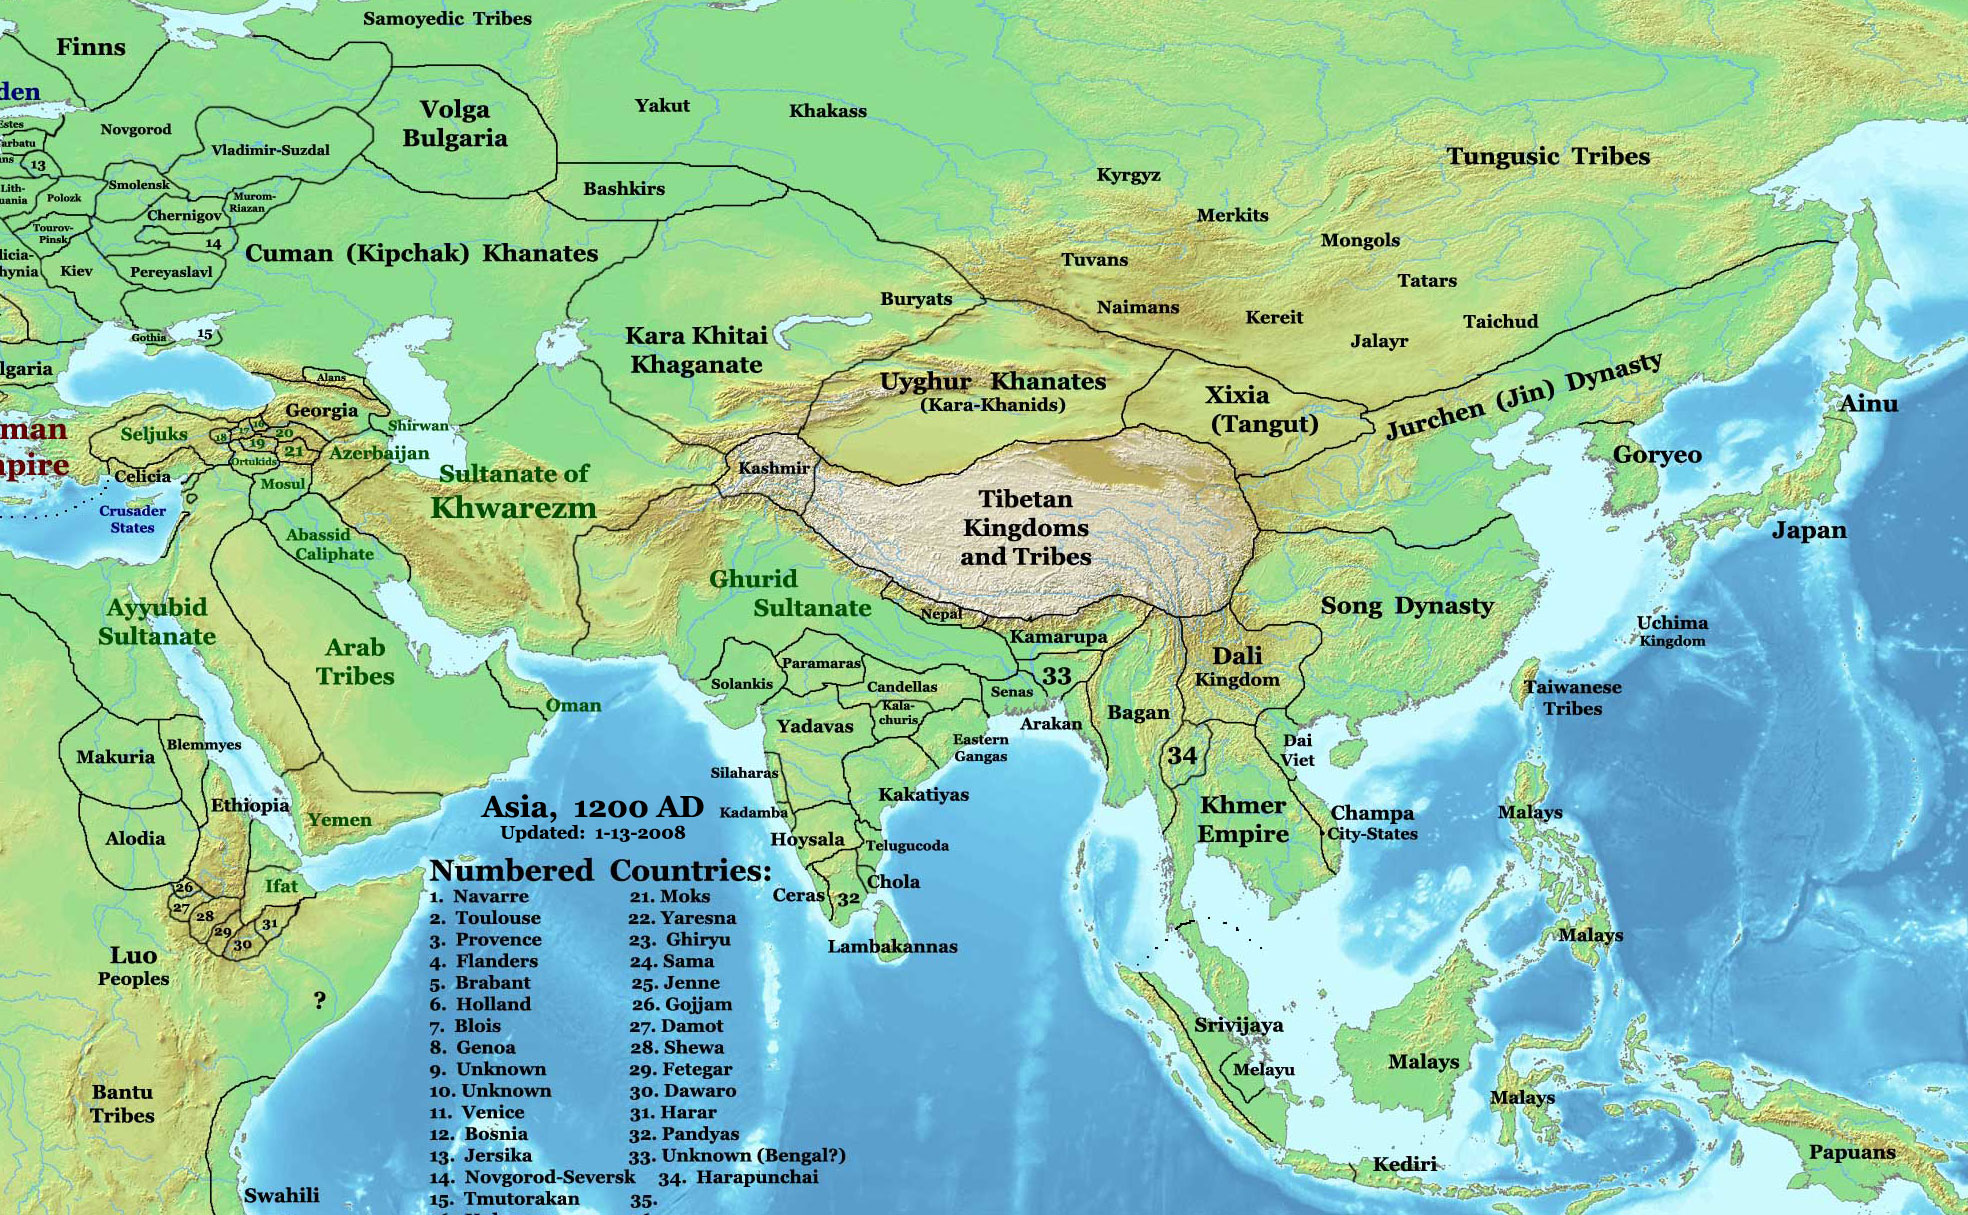 Eastern Hemisphere Map With Names File:Asia 1200a...